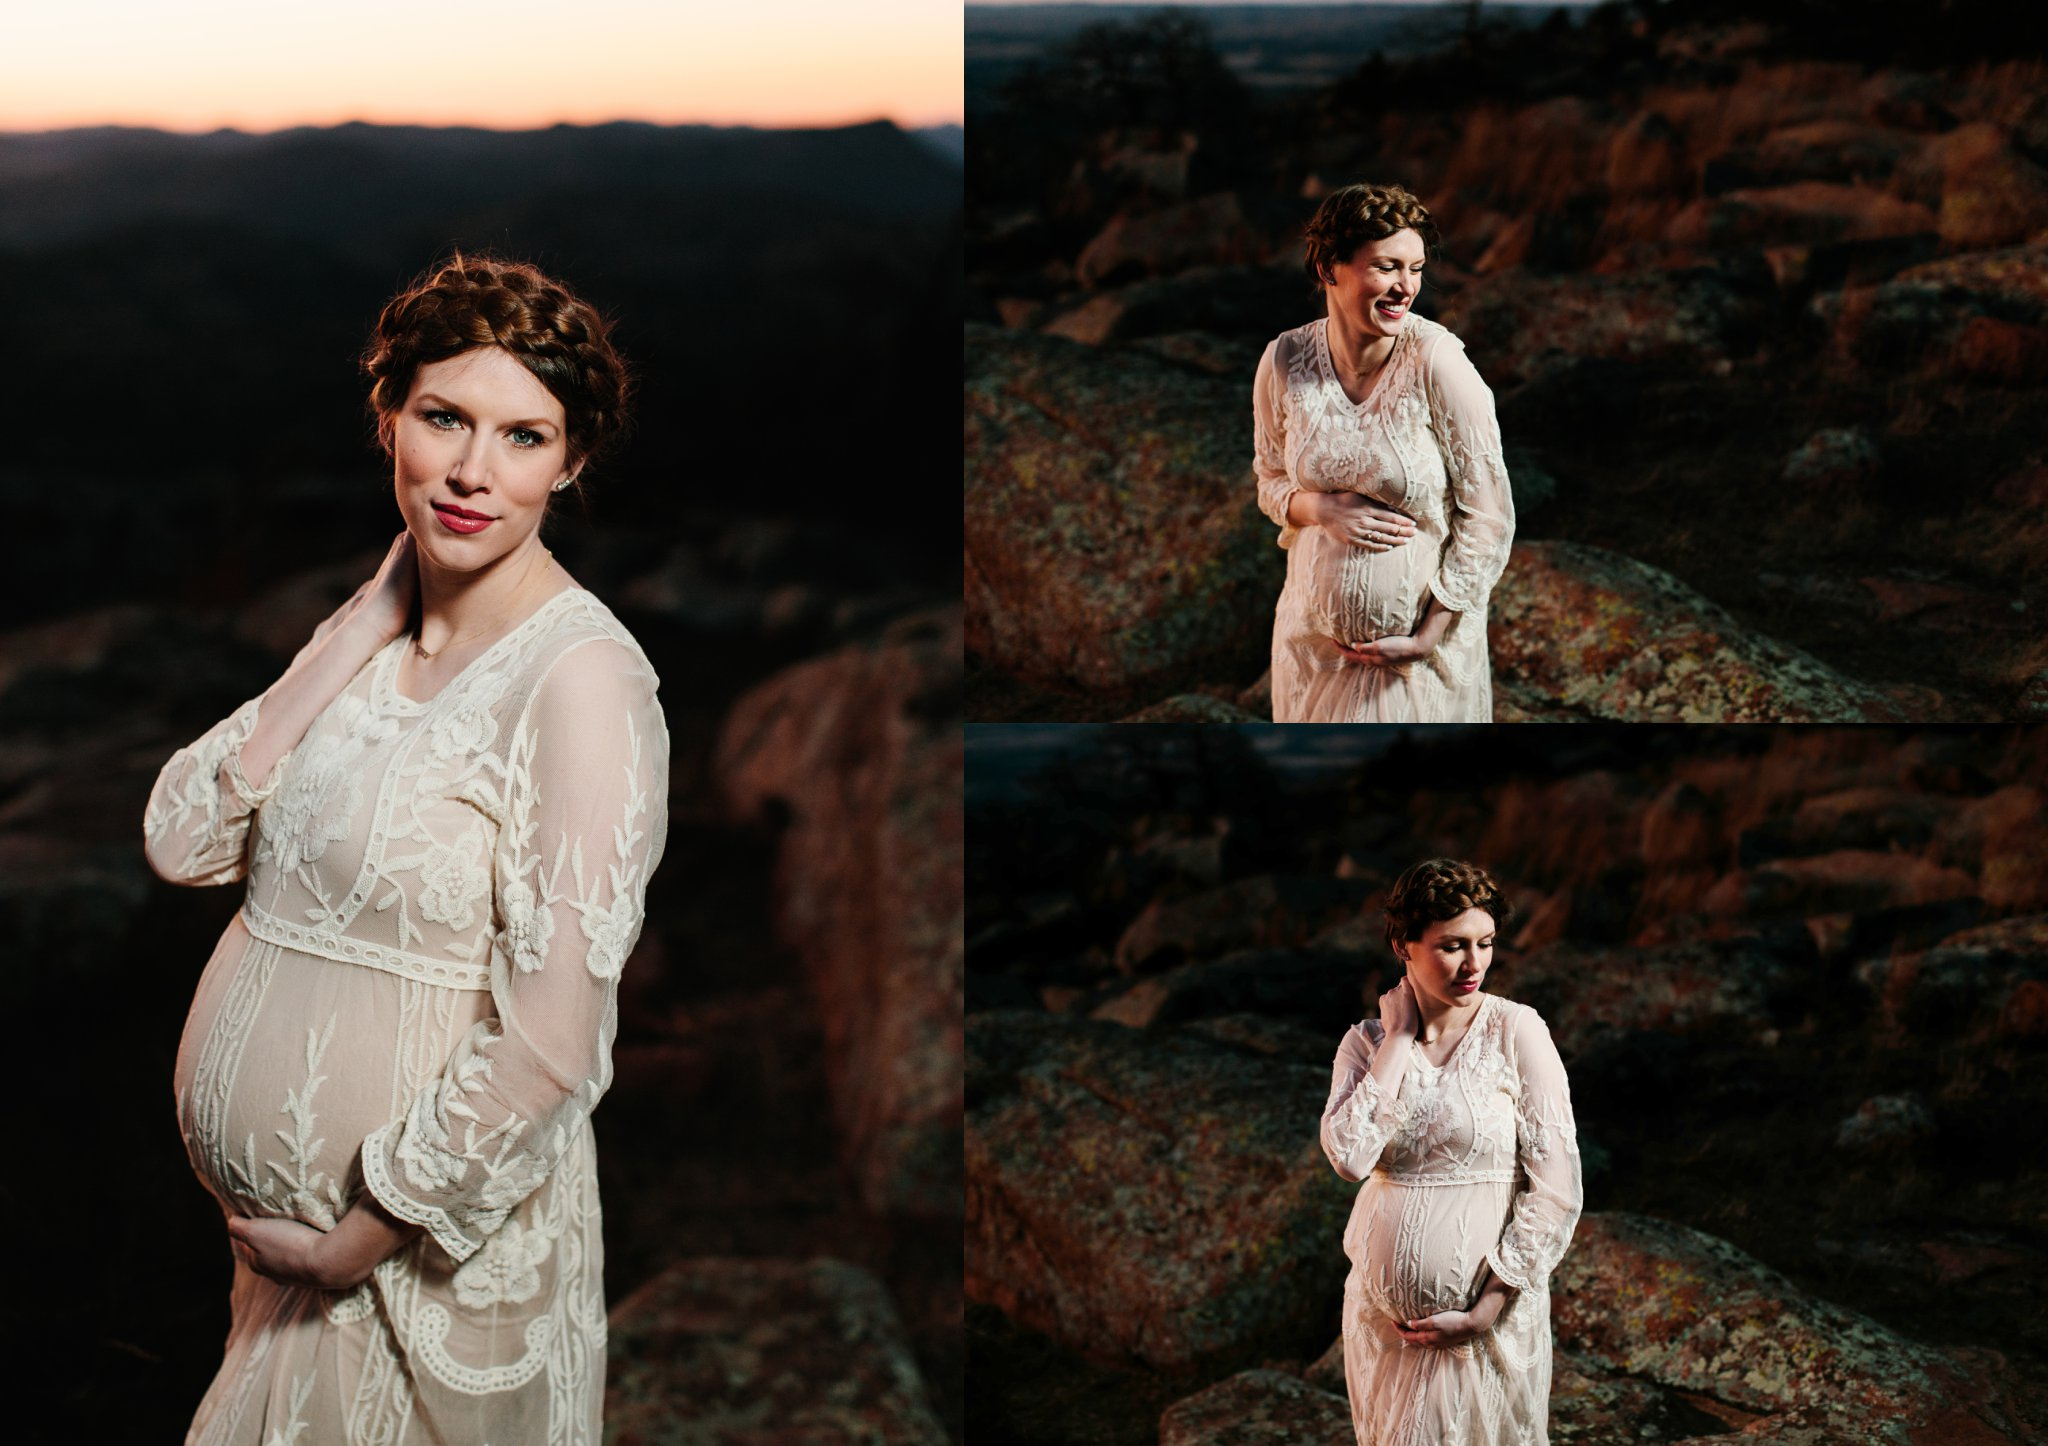 western-oklahoma-maternity-newborn-photographer-sunset-travel-outdoors-mount-scott.jpg